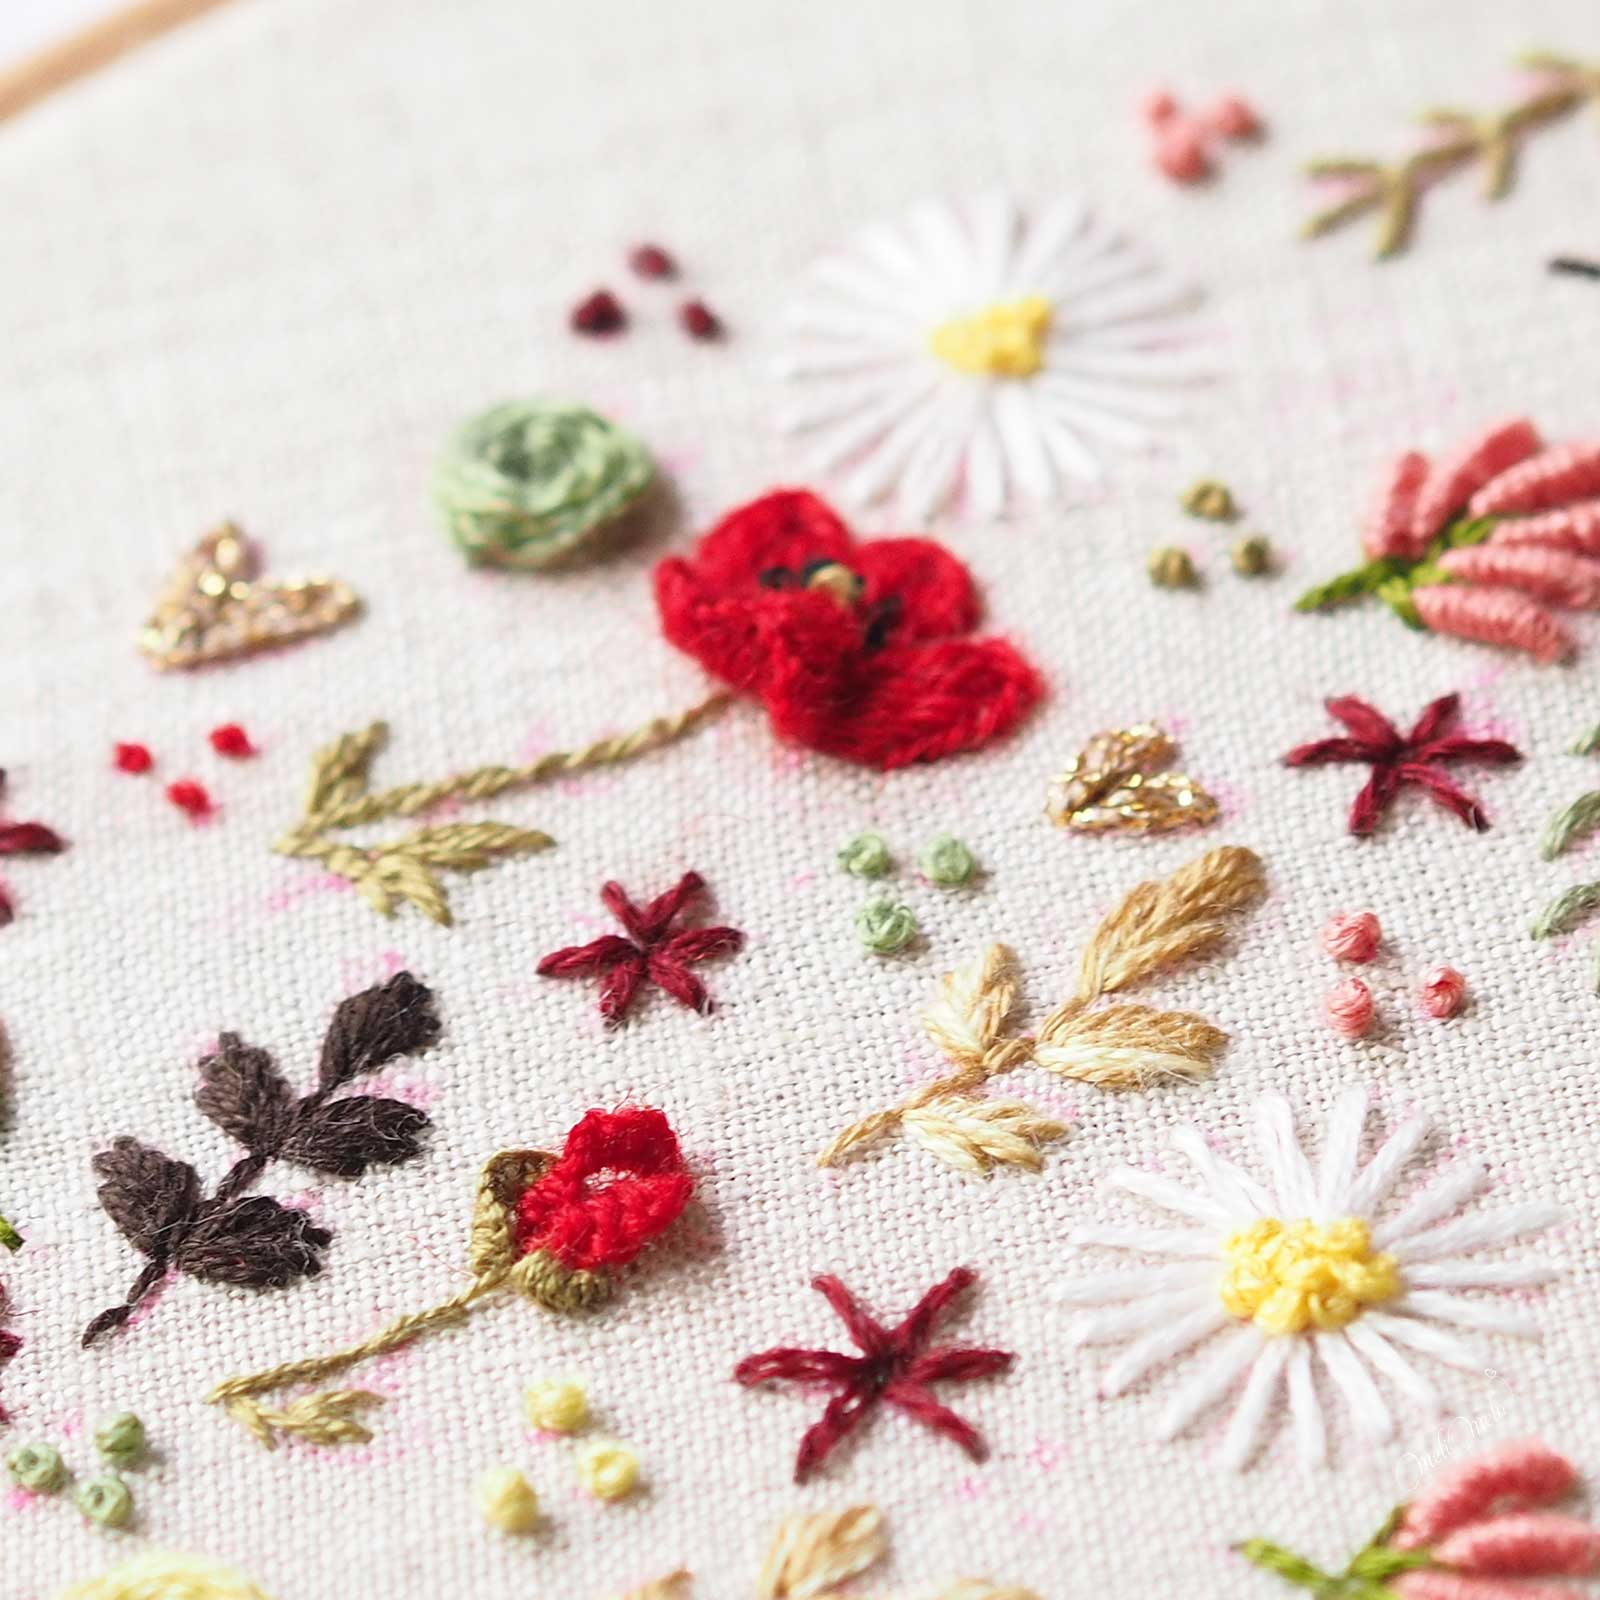 broderie-coquelicot-relief-point-floria-cast-on-stitch-laboutiquedemelimelo